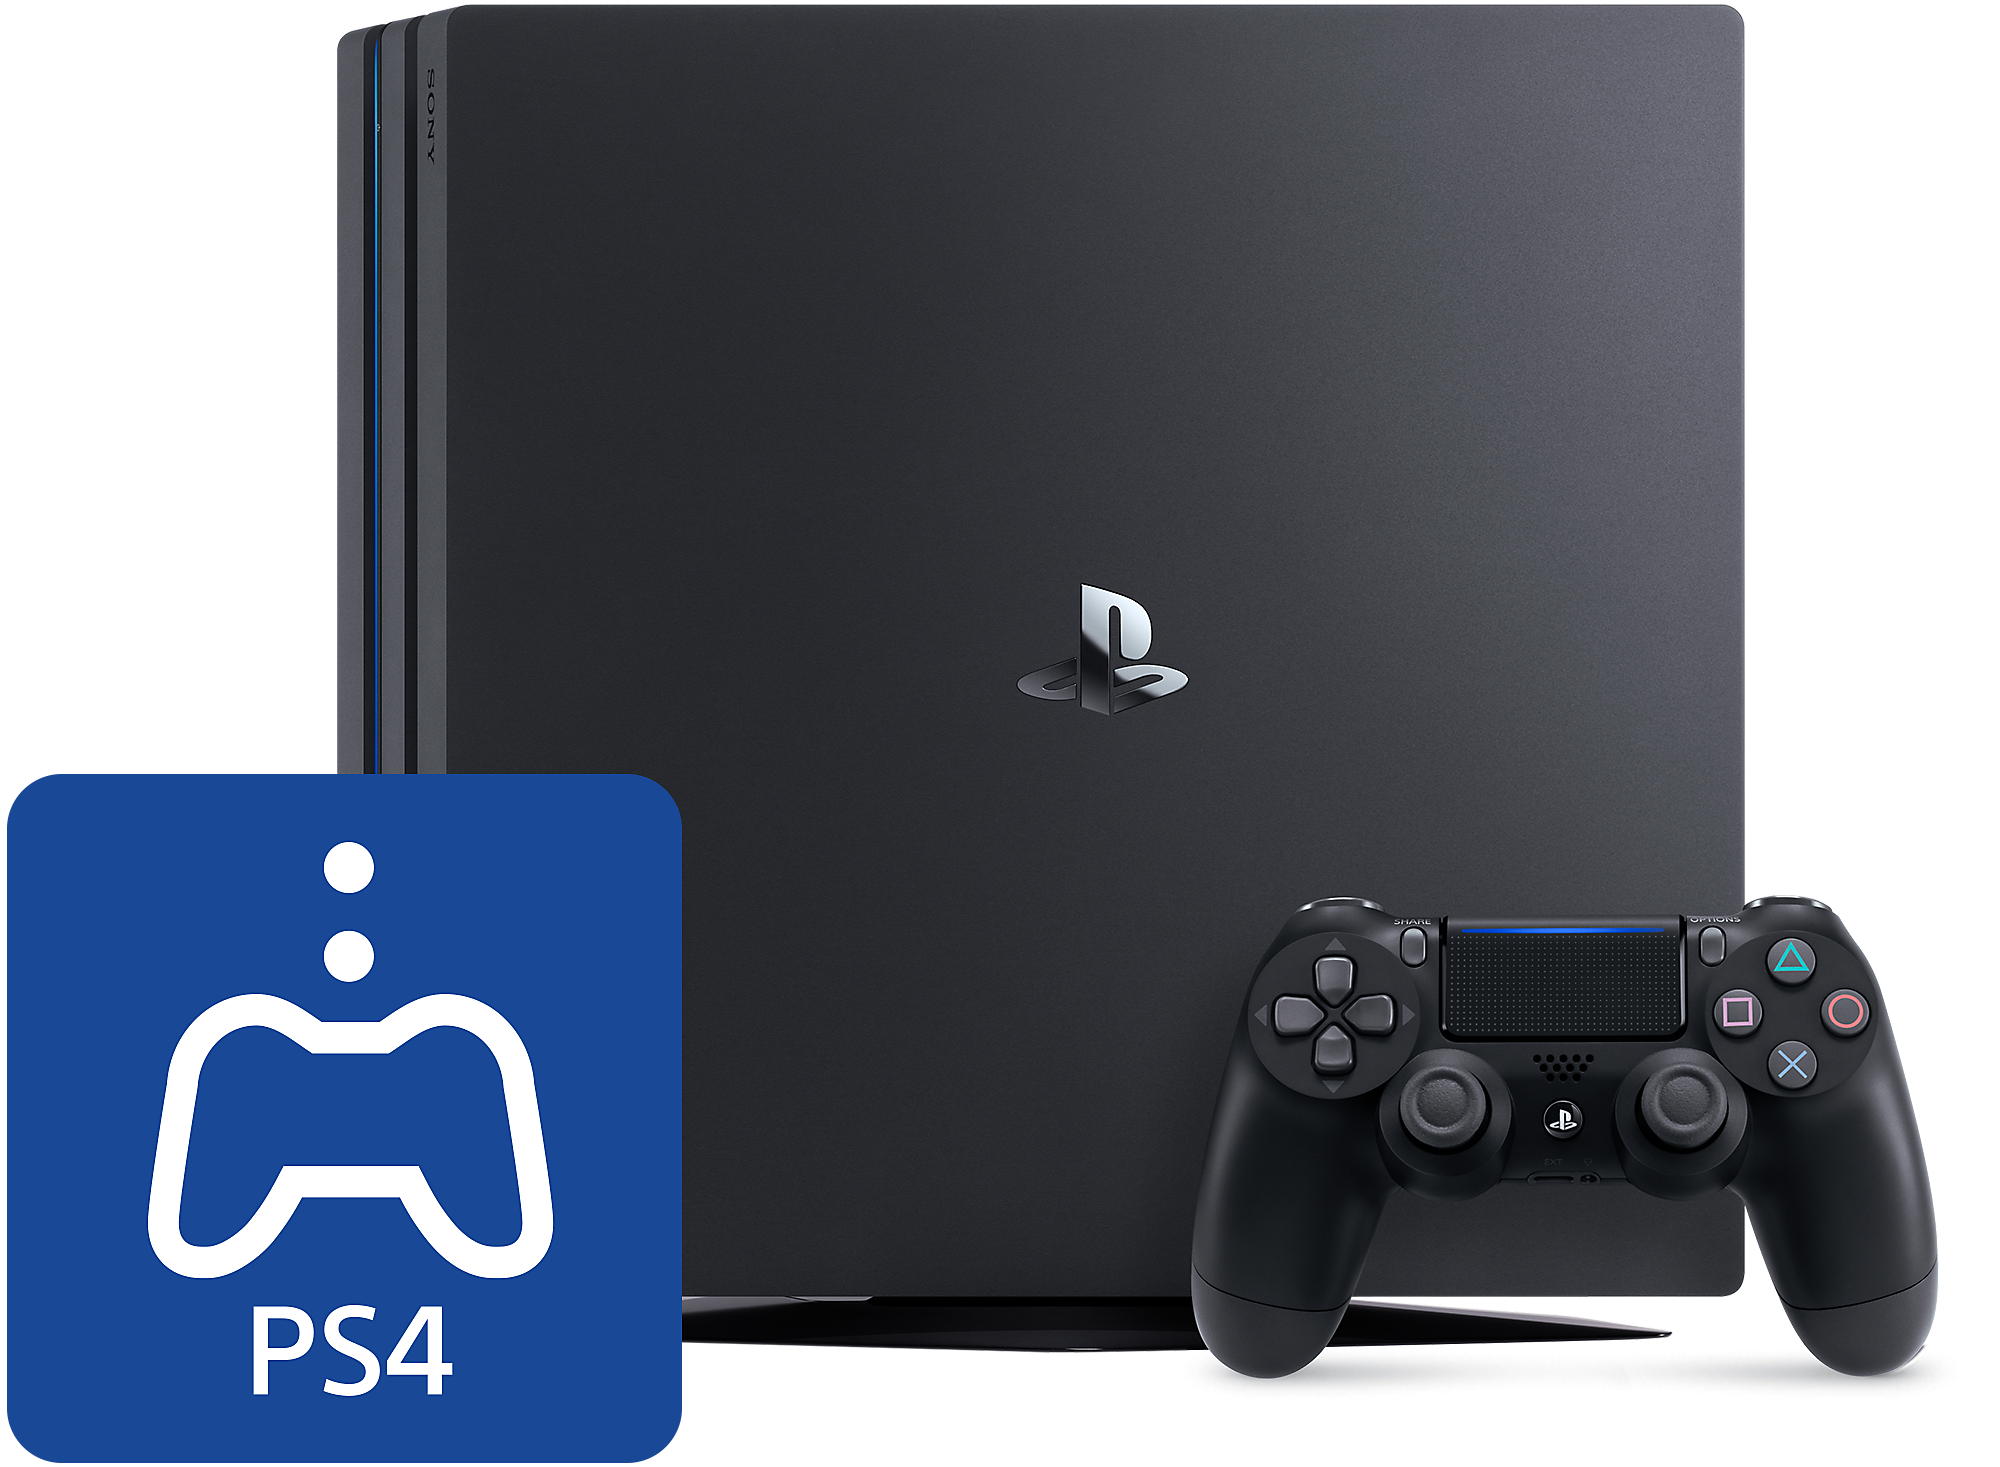 Remote Play - What is PS4 Remote Play PS4 Console Image